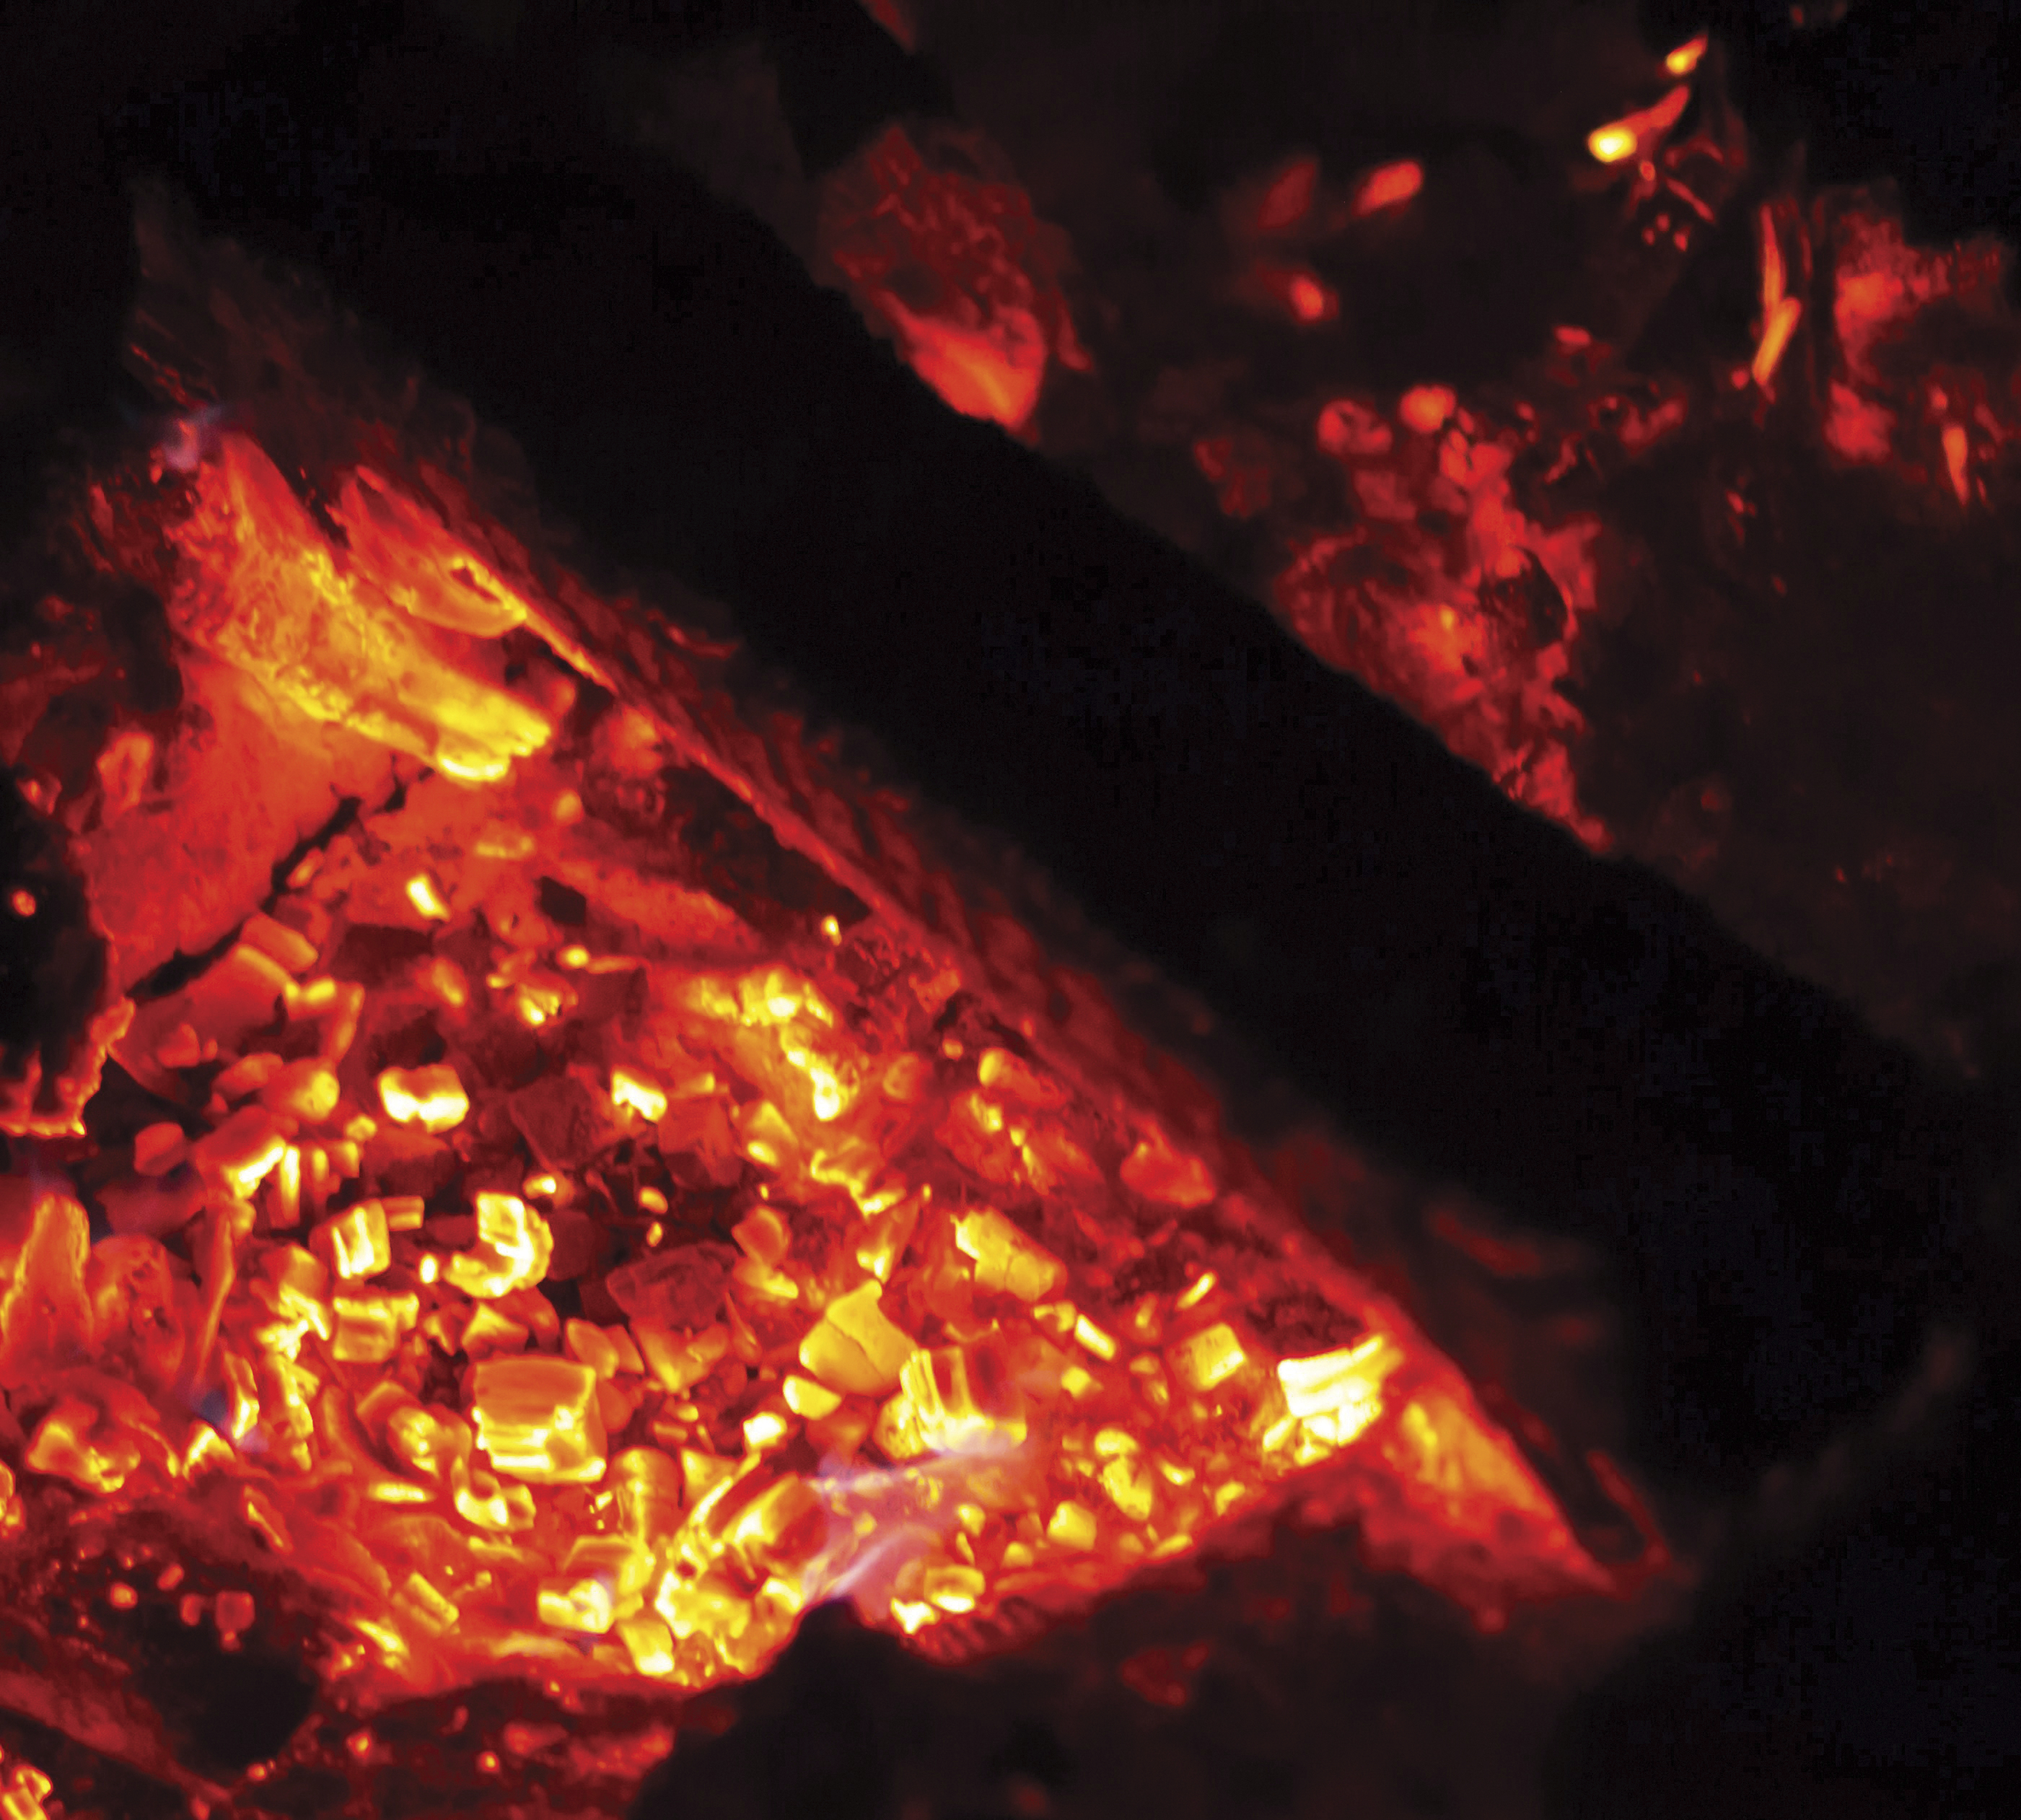 Glowing red embers in a fire pit.